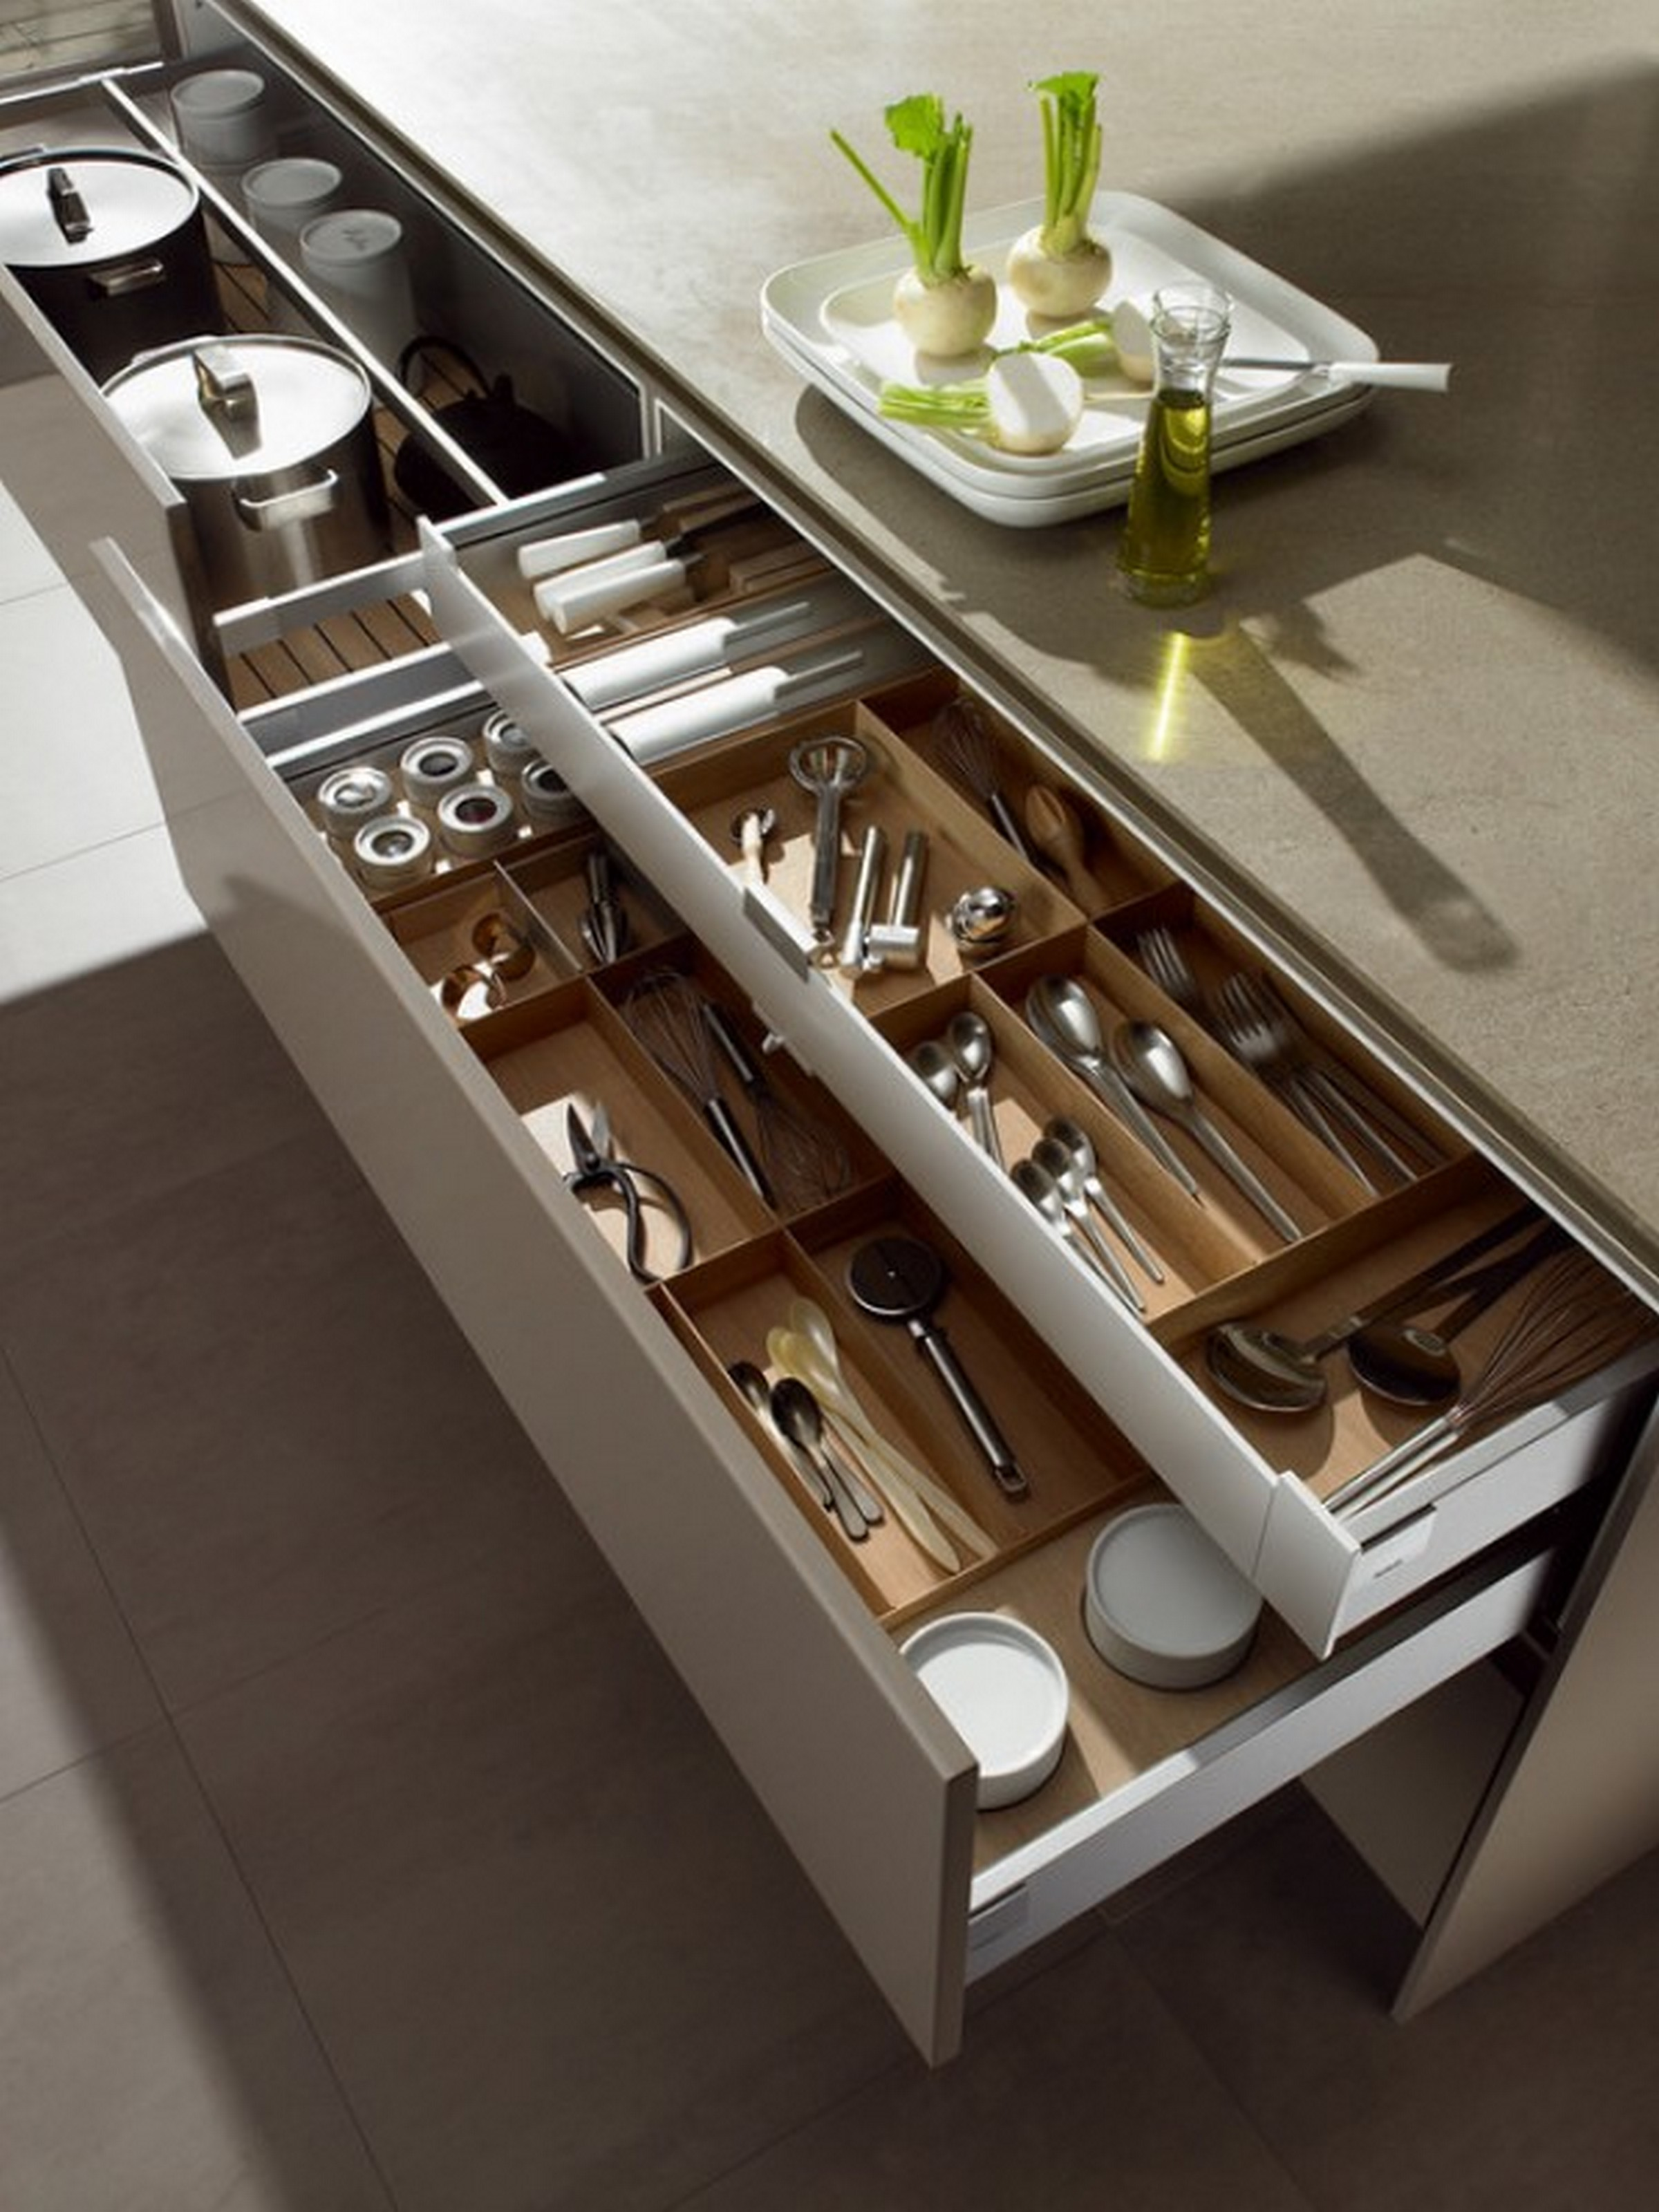 Kitchen Drawer Organization Ideas Without Handles